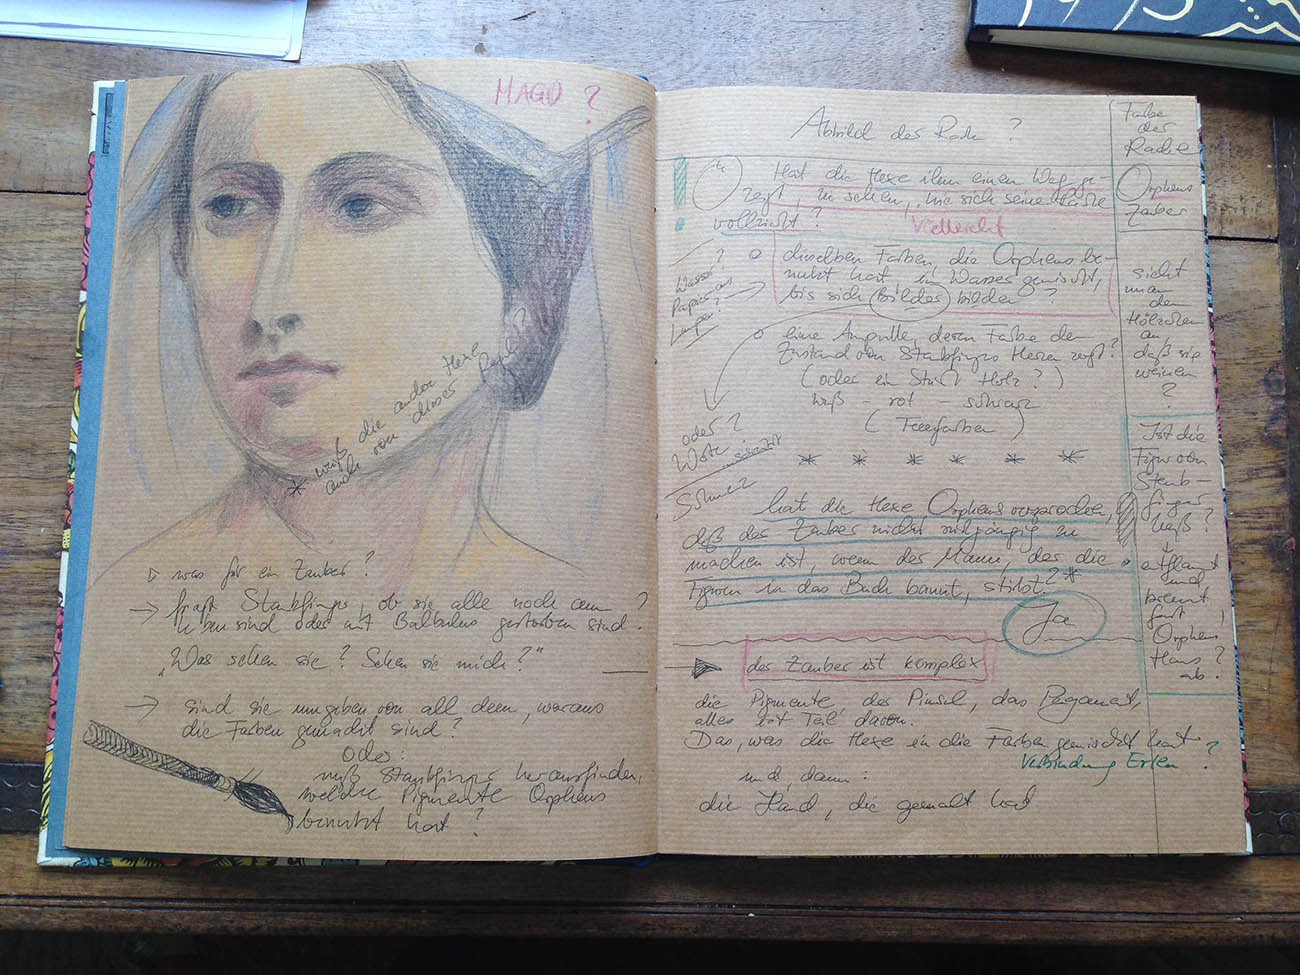 Interior pages from one of Cornelia Funke's research notebooks shows cursive writing and a drawing of a woman's face